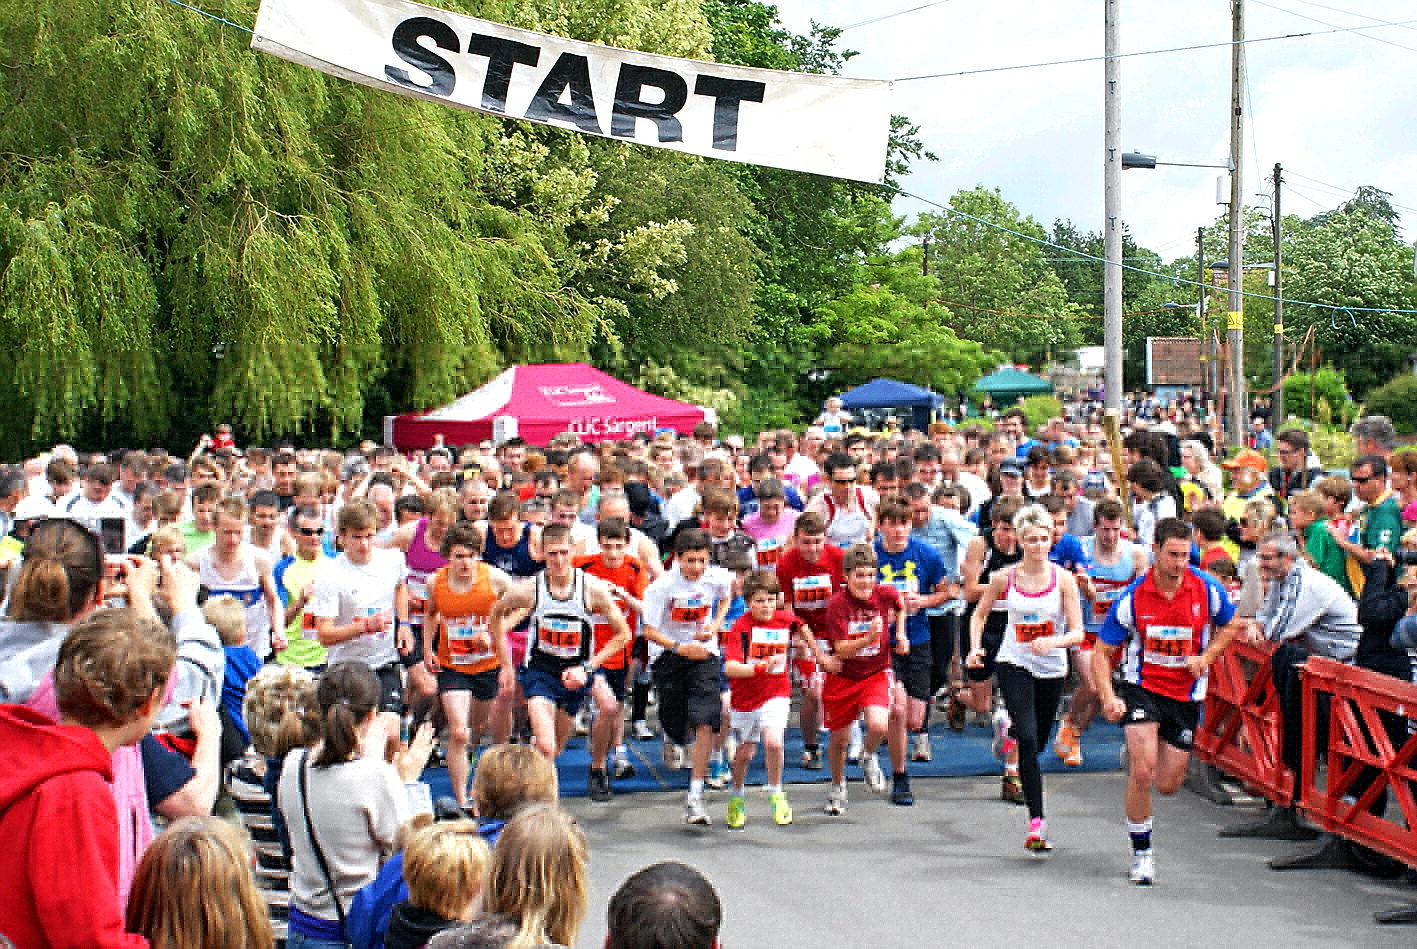 The start of last year's Oldbury Fun Run